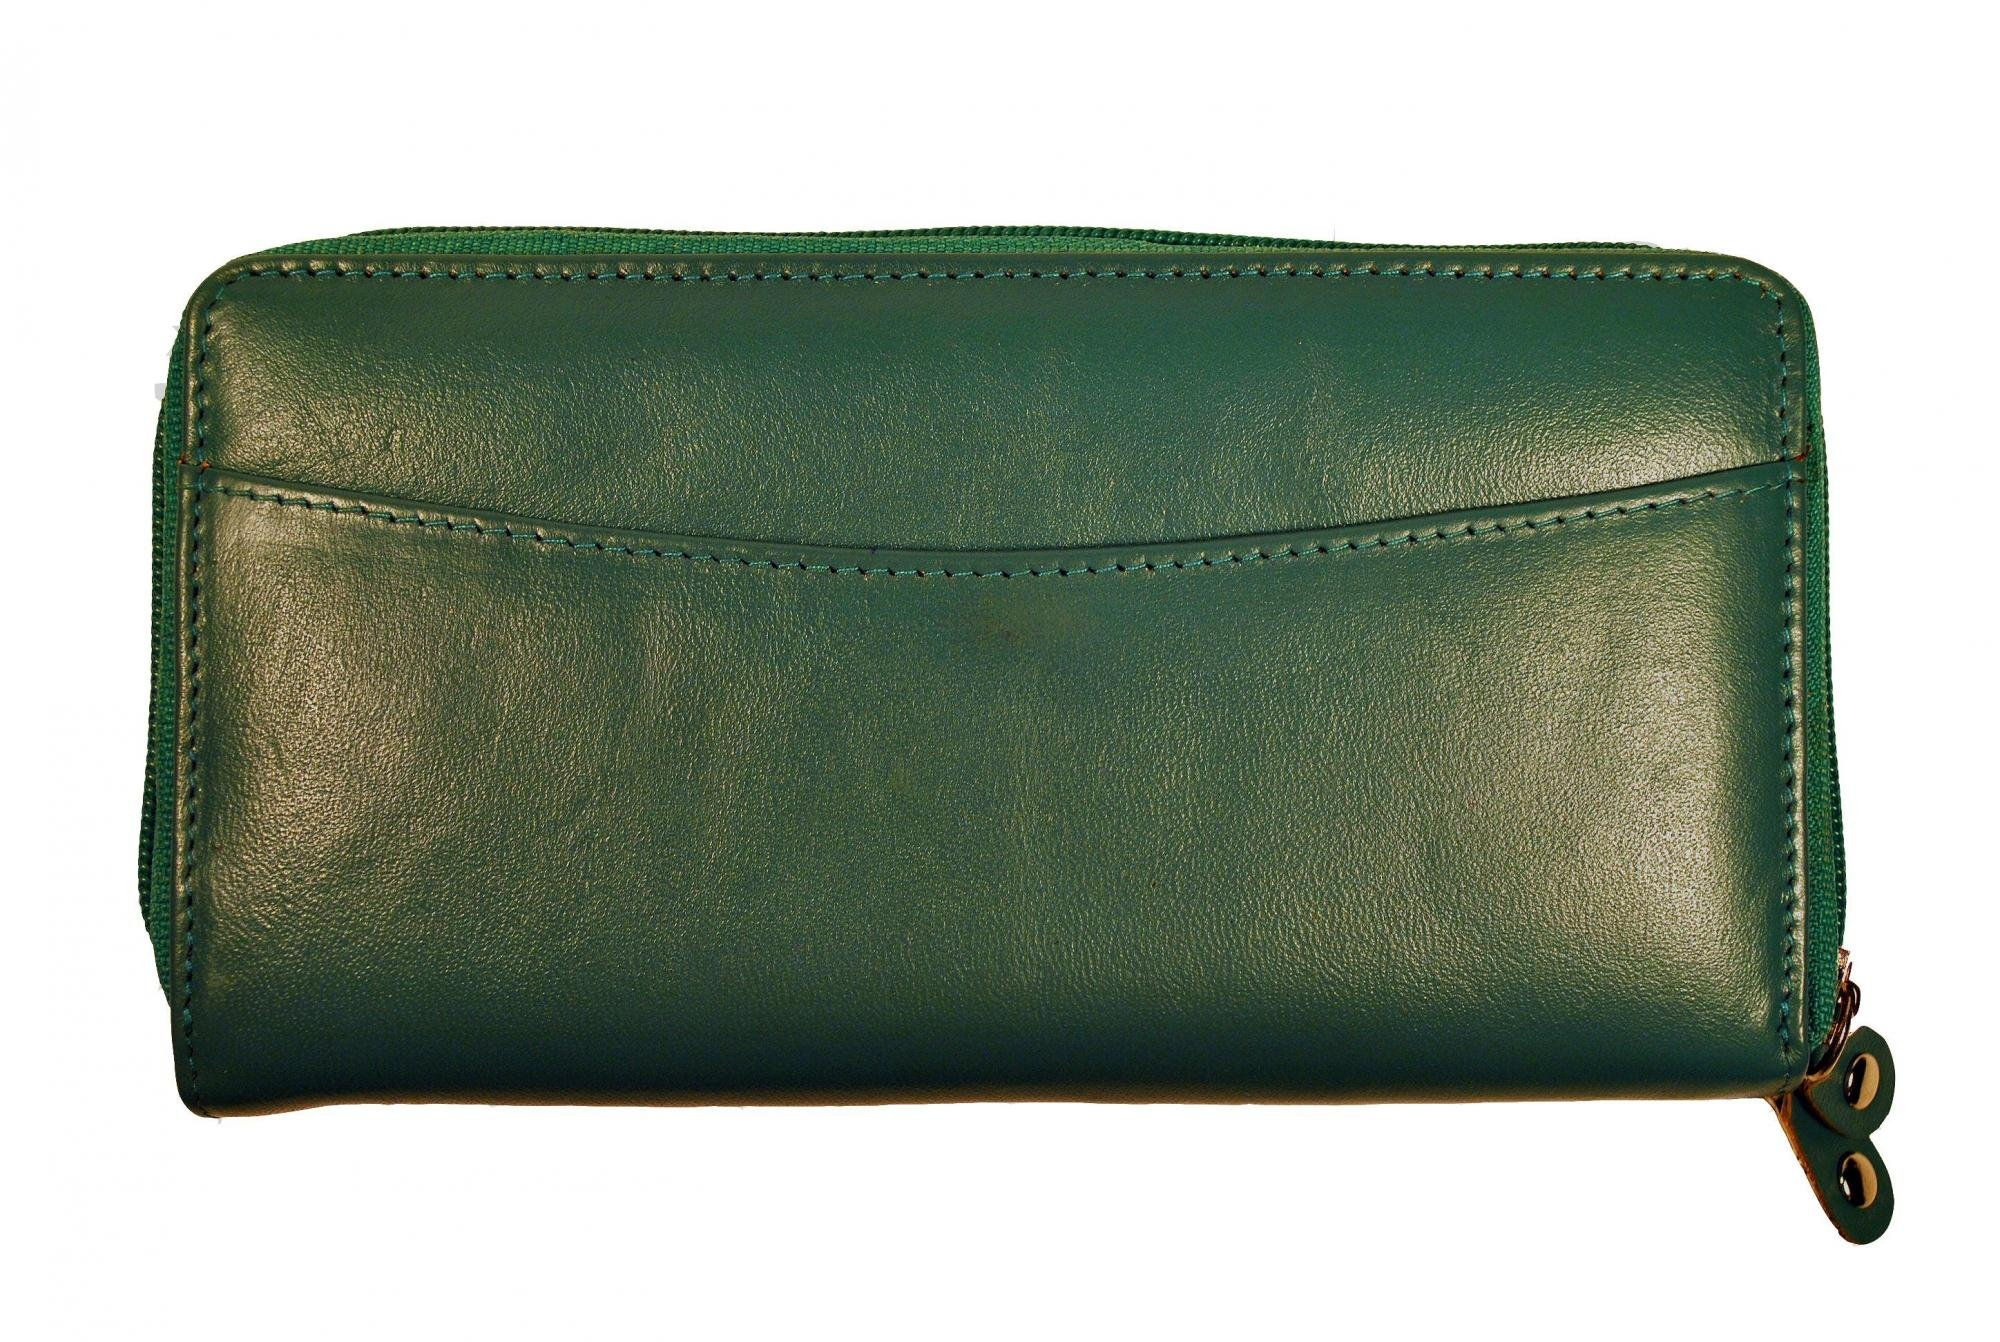 Budd Leather Calf Double Zip Around Credit Card Wallet With RFID - Green